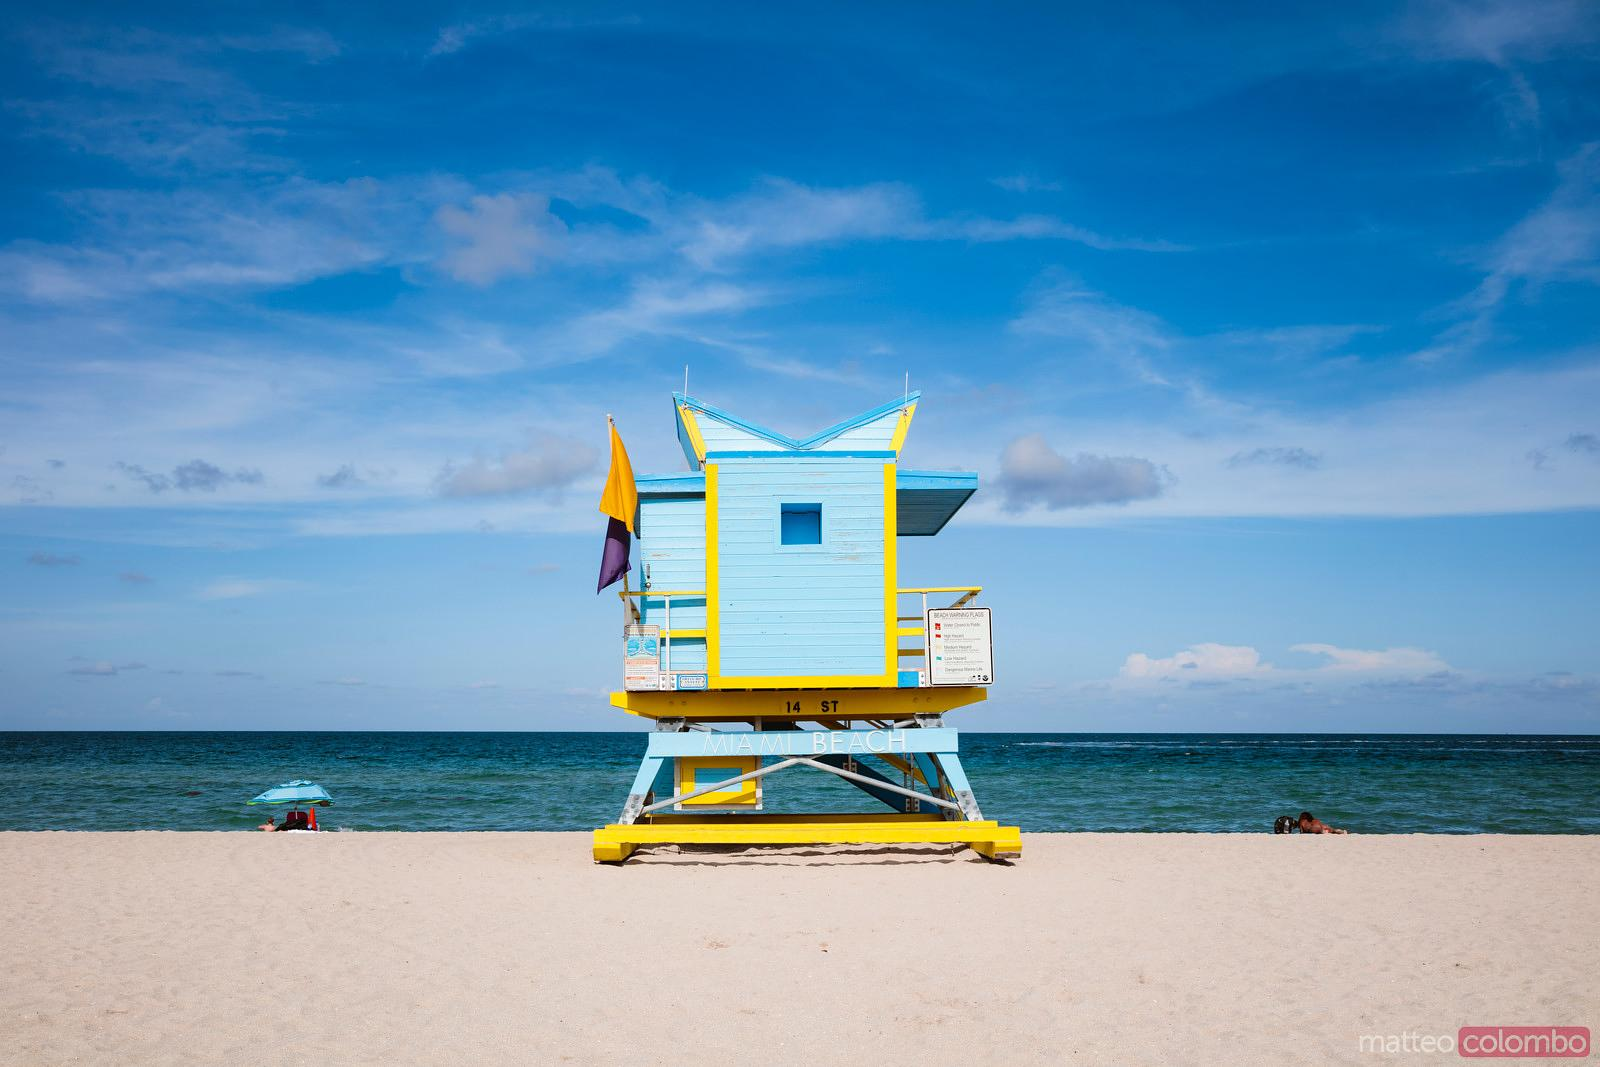 South beach iconic lifeguard hut, Miami, USA